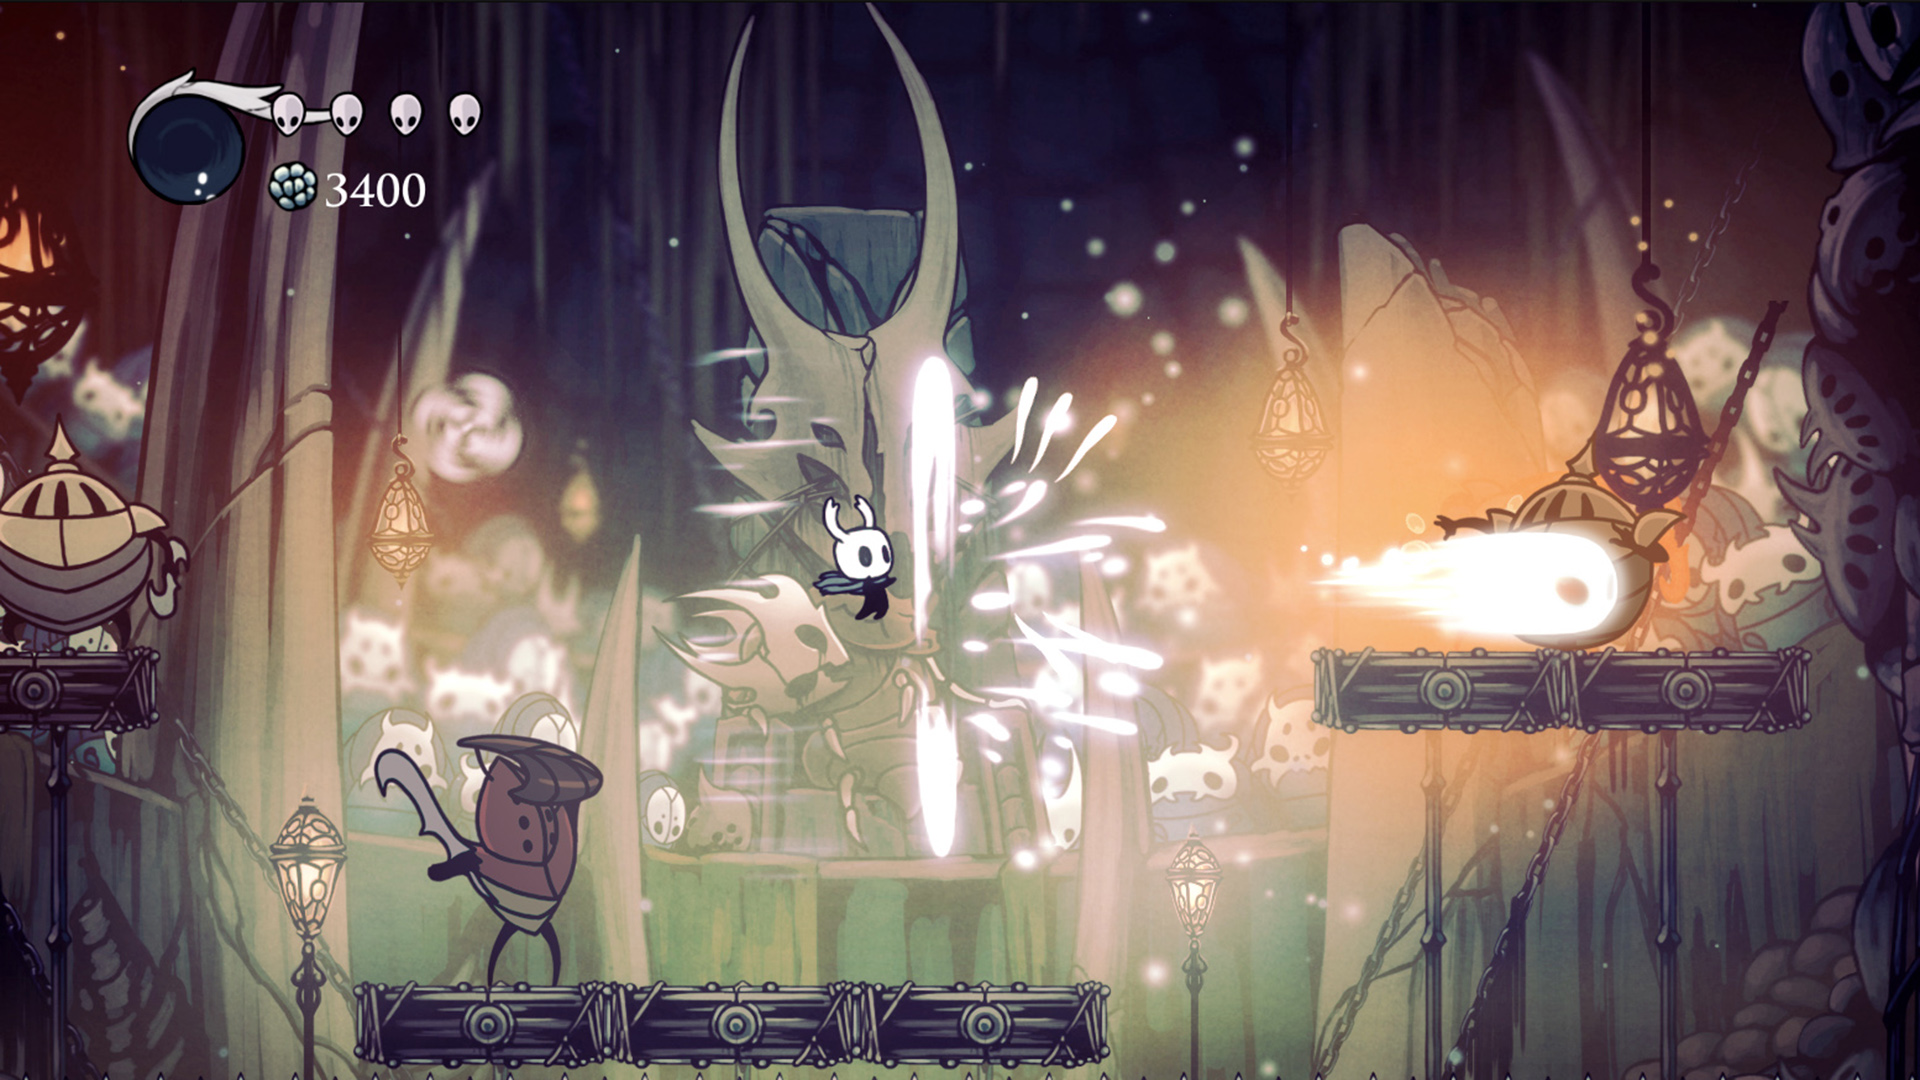 Find the best gaming PC for Hollow Knight